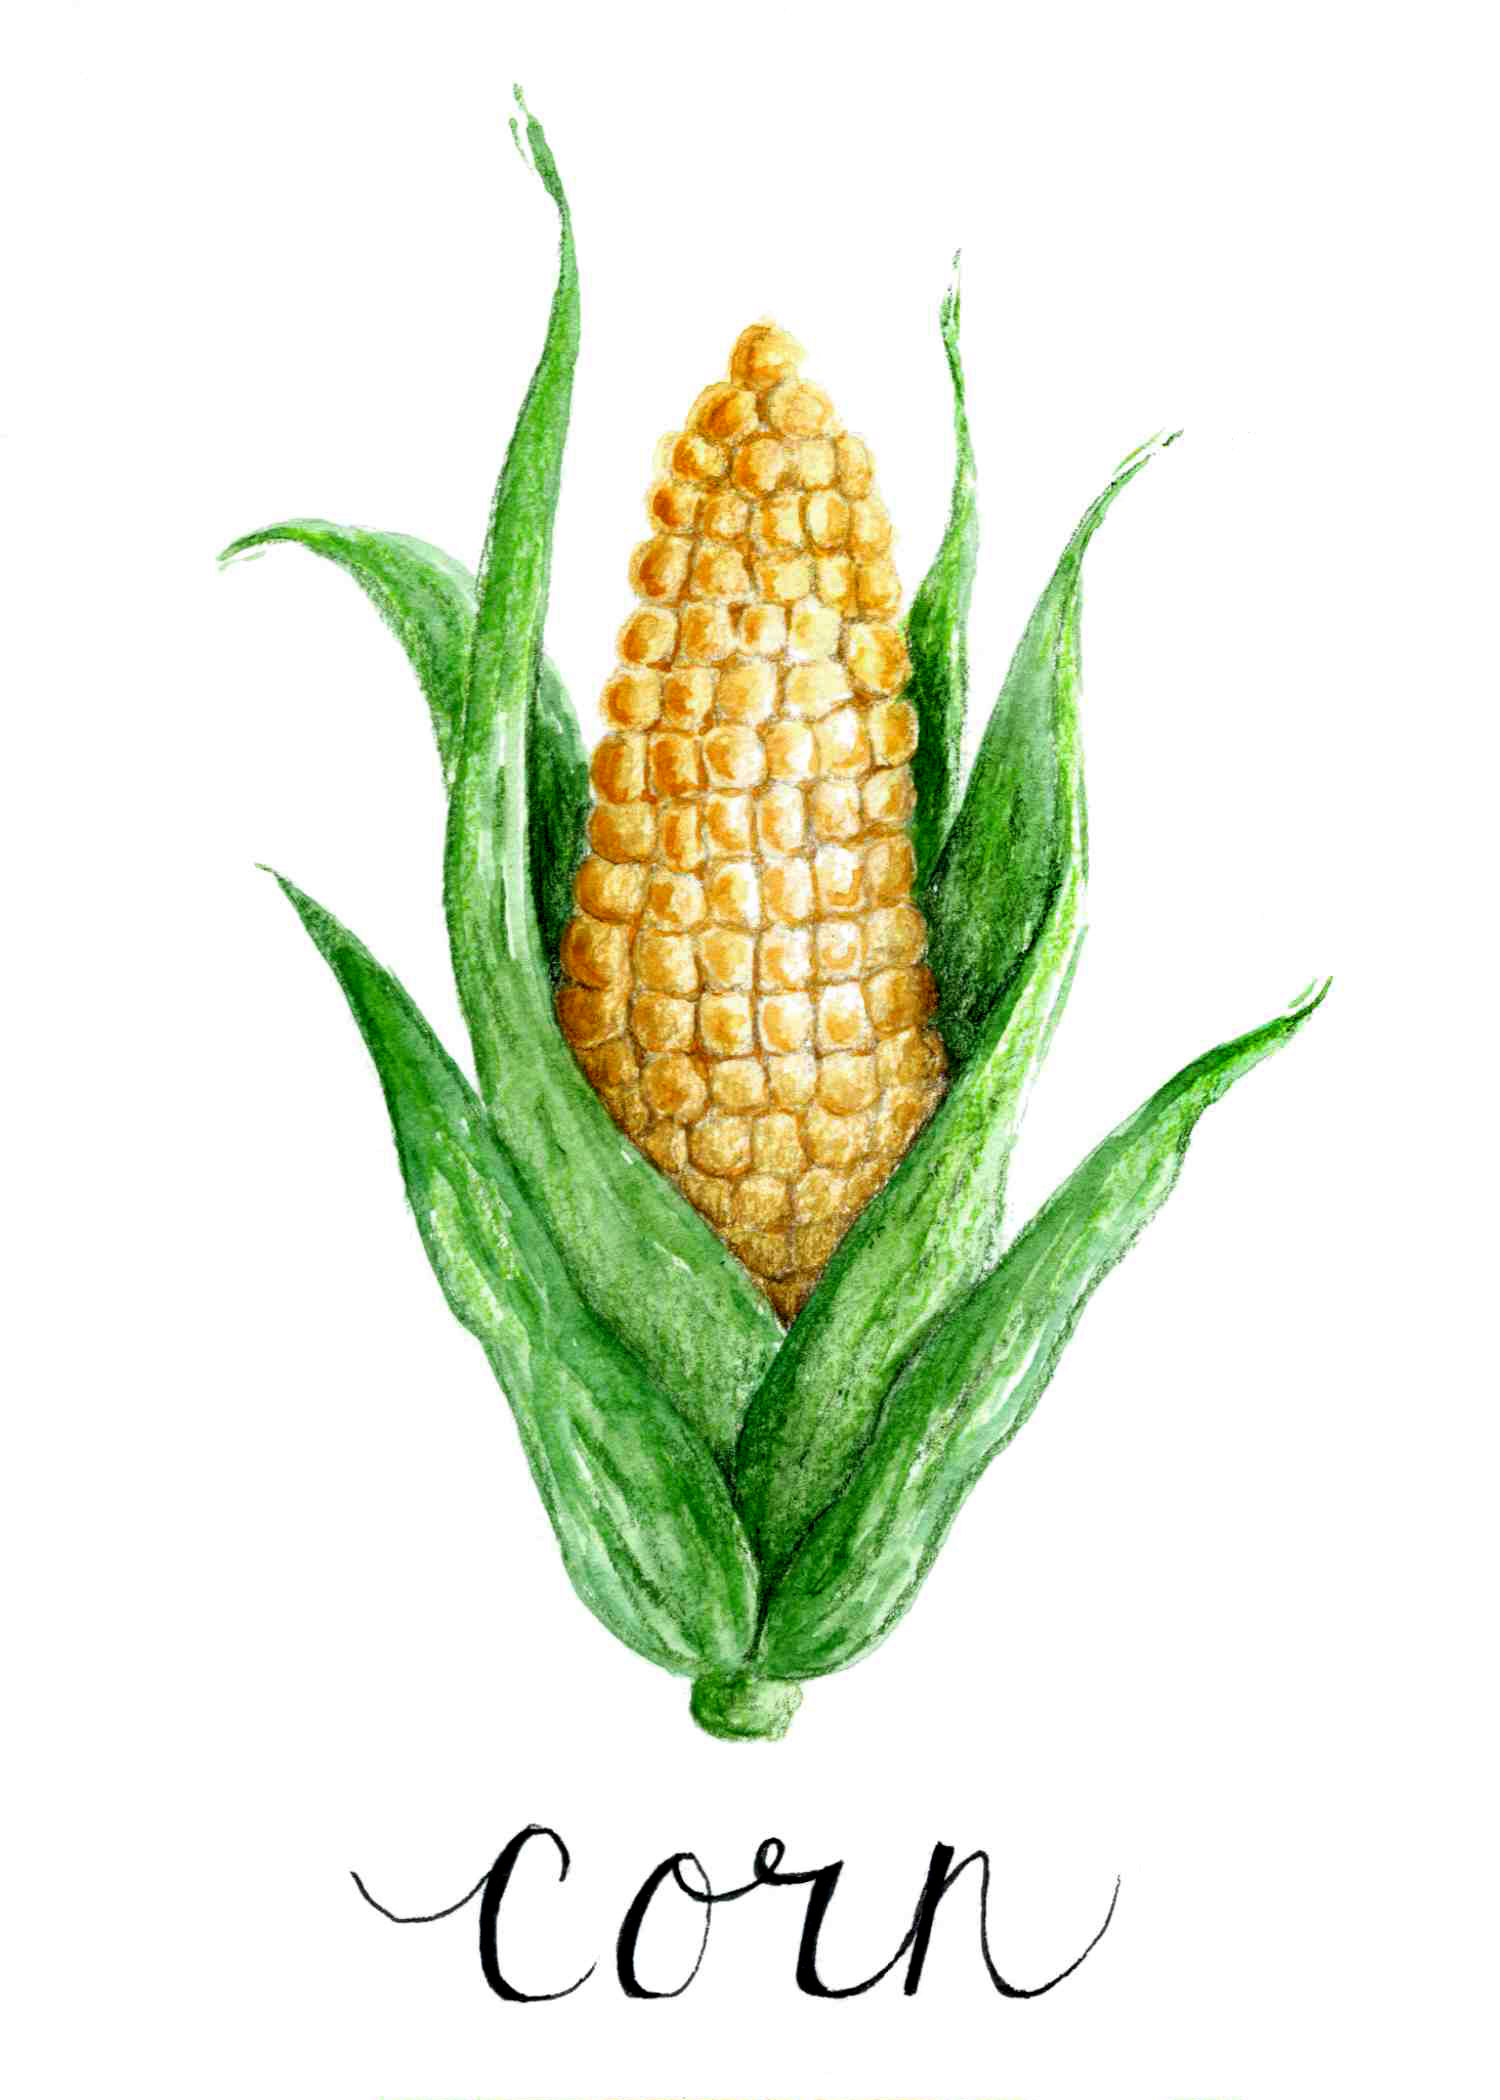 Veggie Series (Corn)